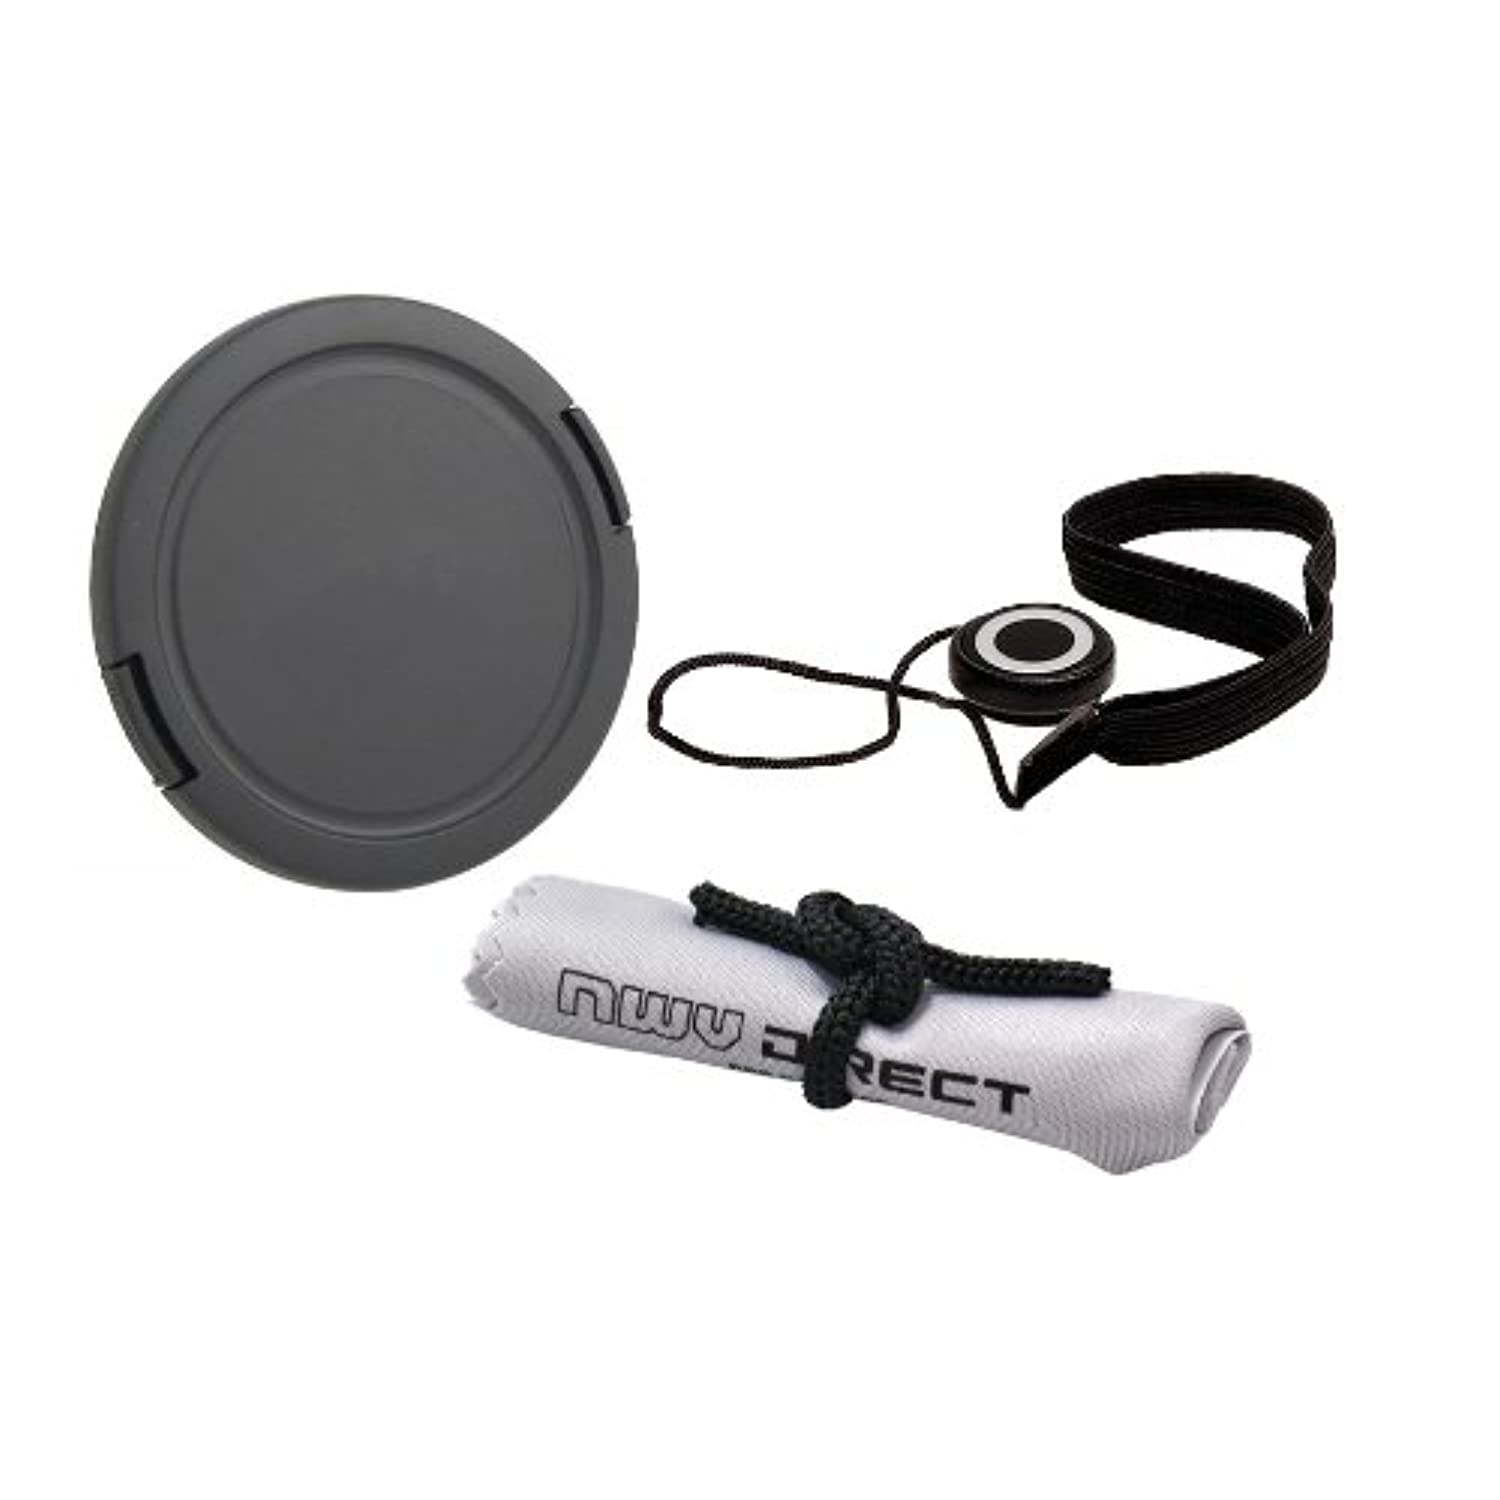 72mm Lens Cap Side Pinch + Lens Cap Holder Nwv Direct Microfiber Cleaning Cloth for Canon EOS Rebel T1i